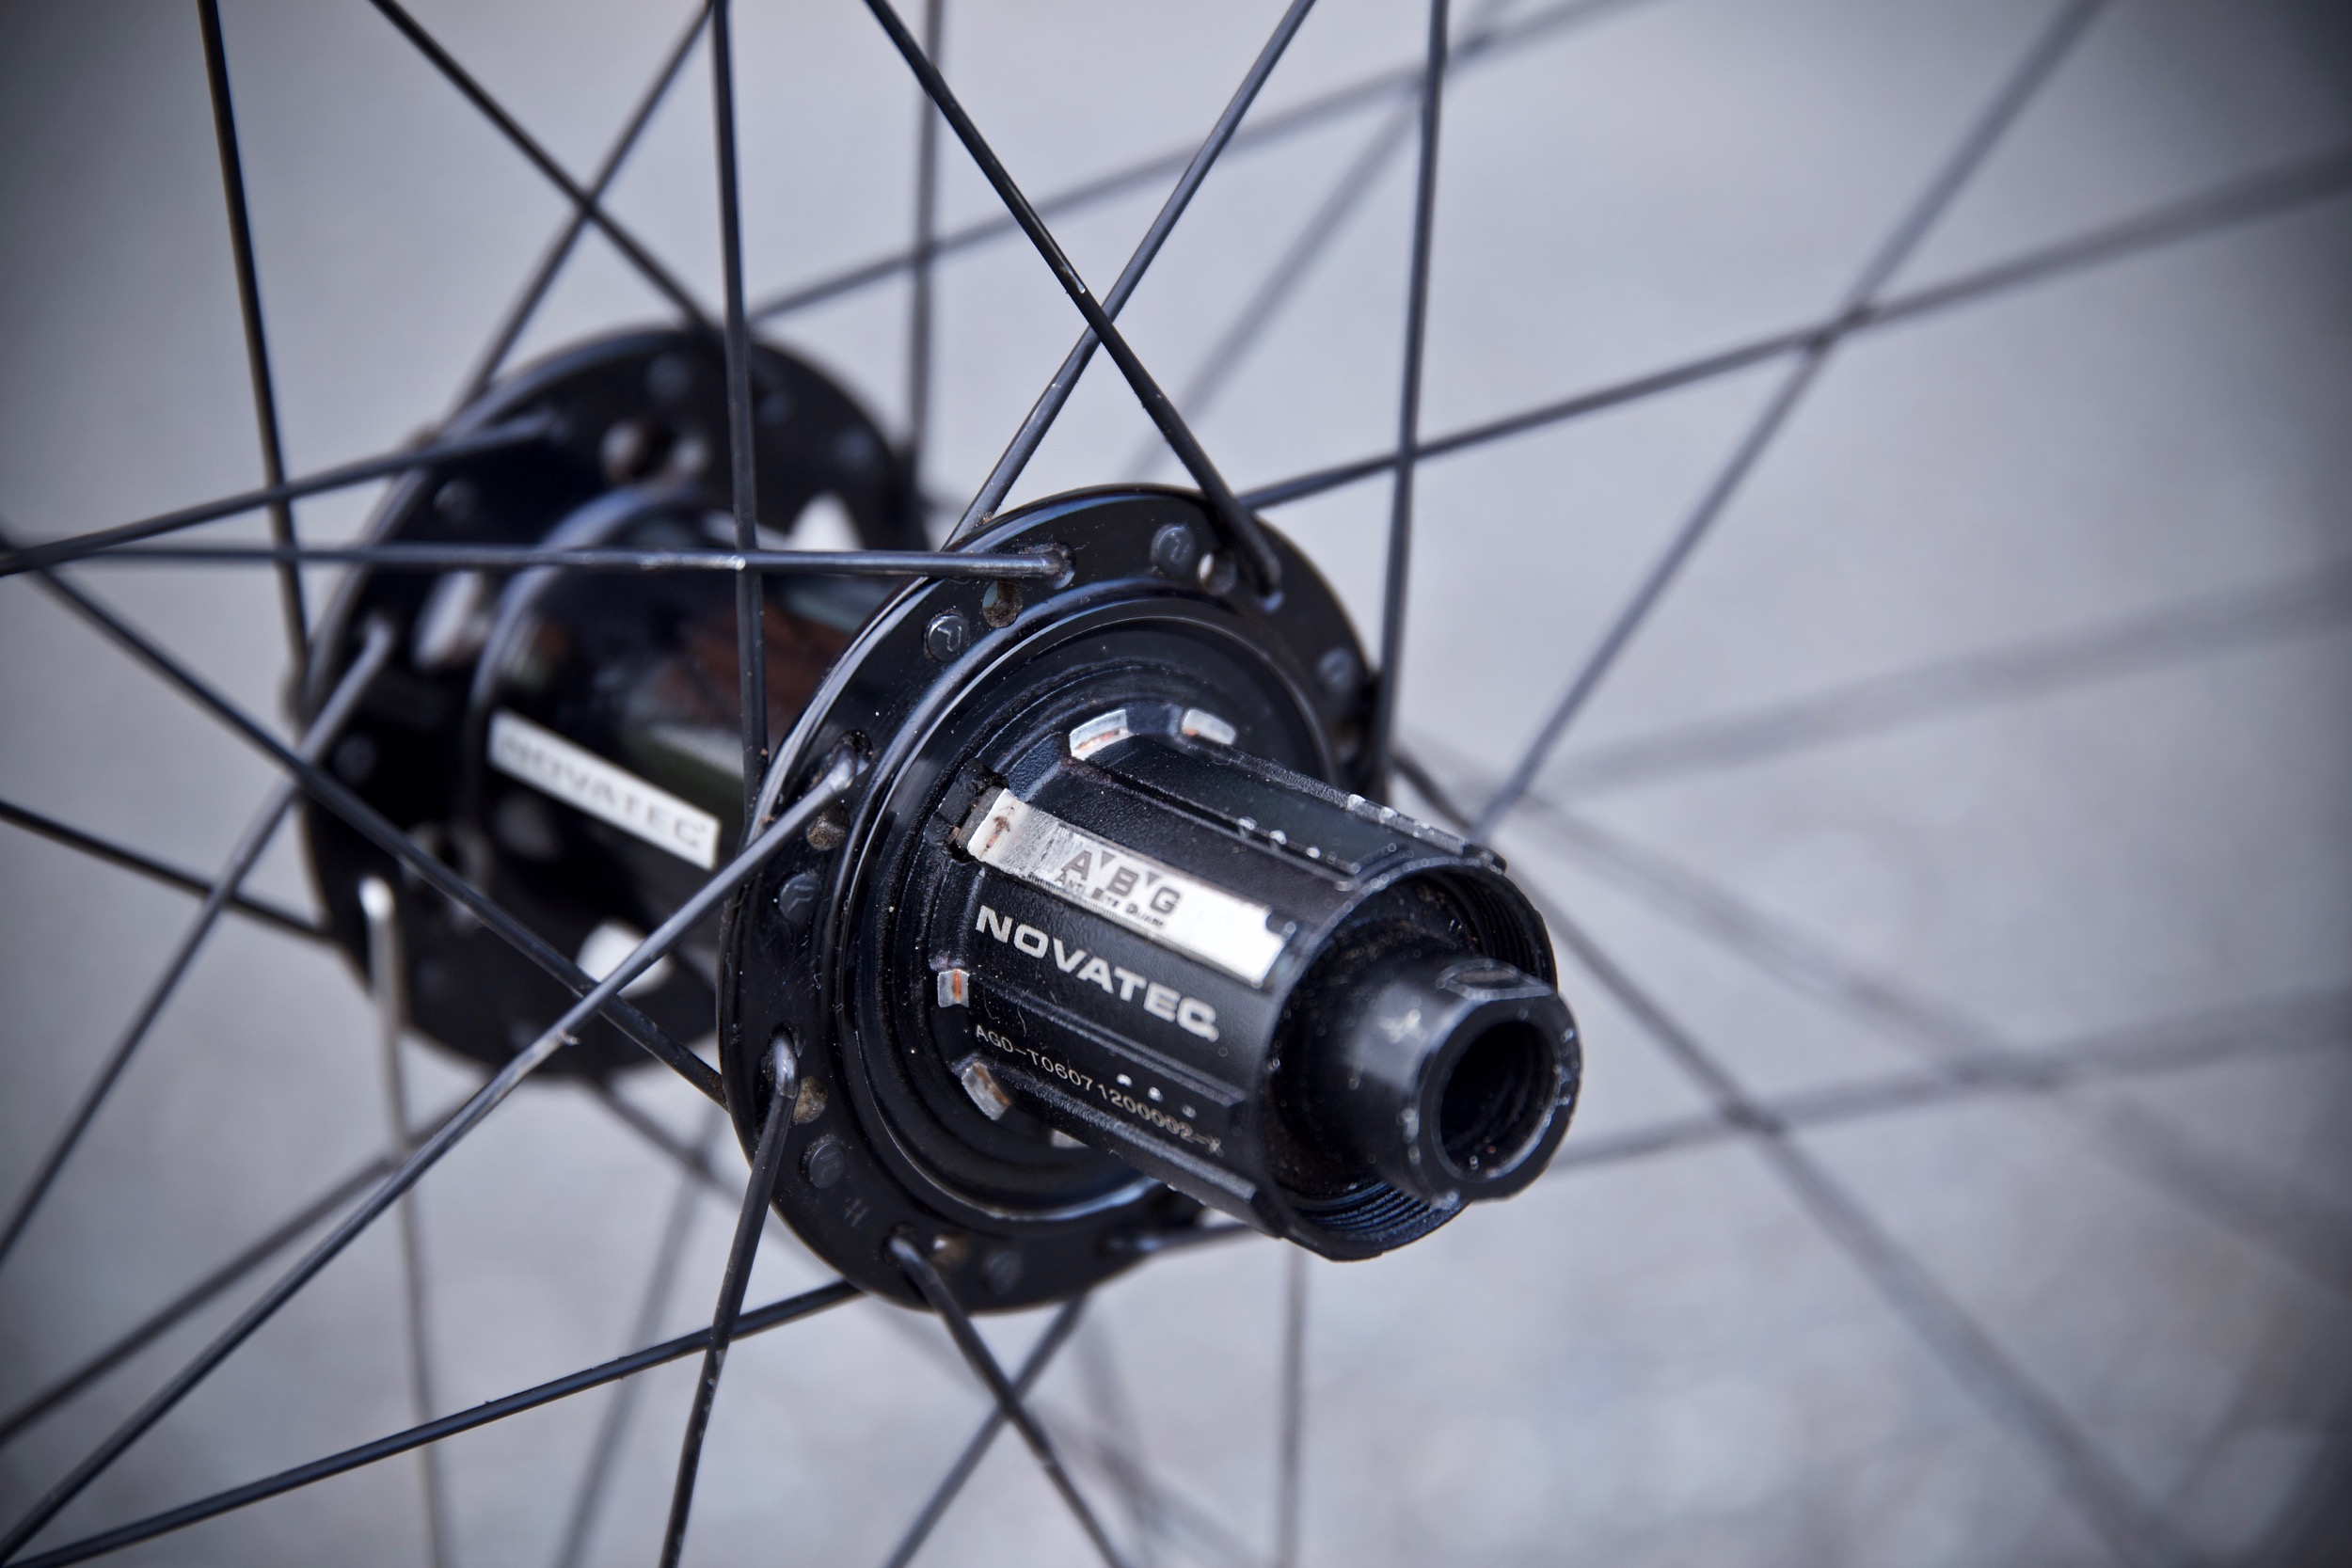 Versus: Bontrager Kovee Elite 23 vs  Novatec Alpine | BIKE